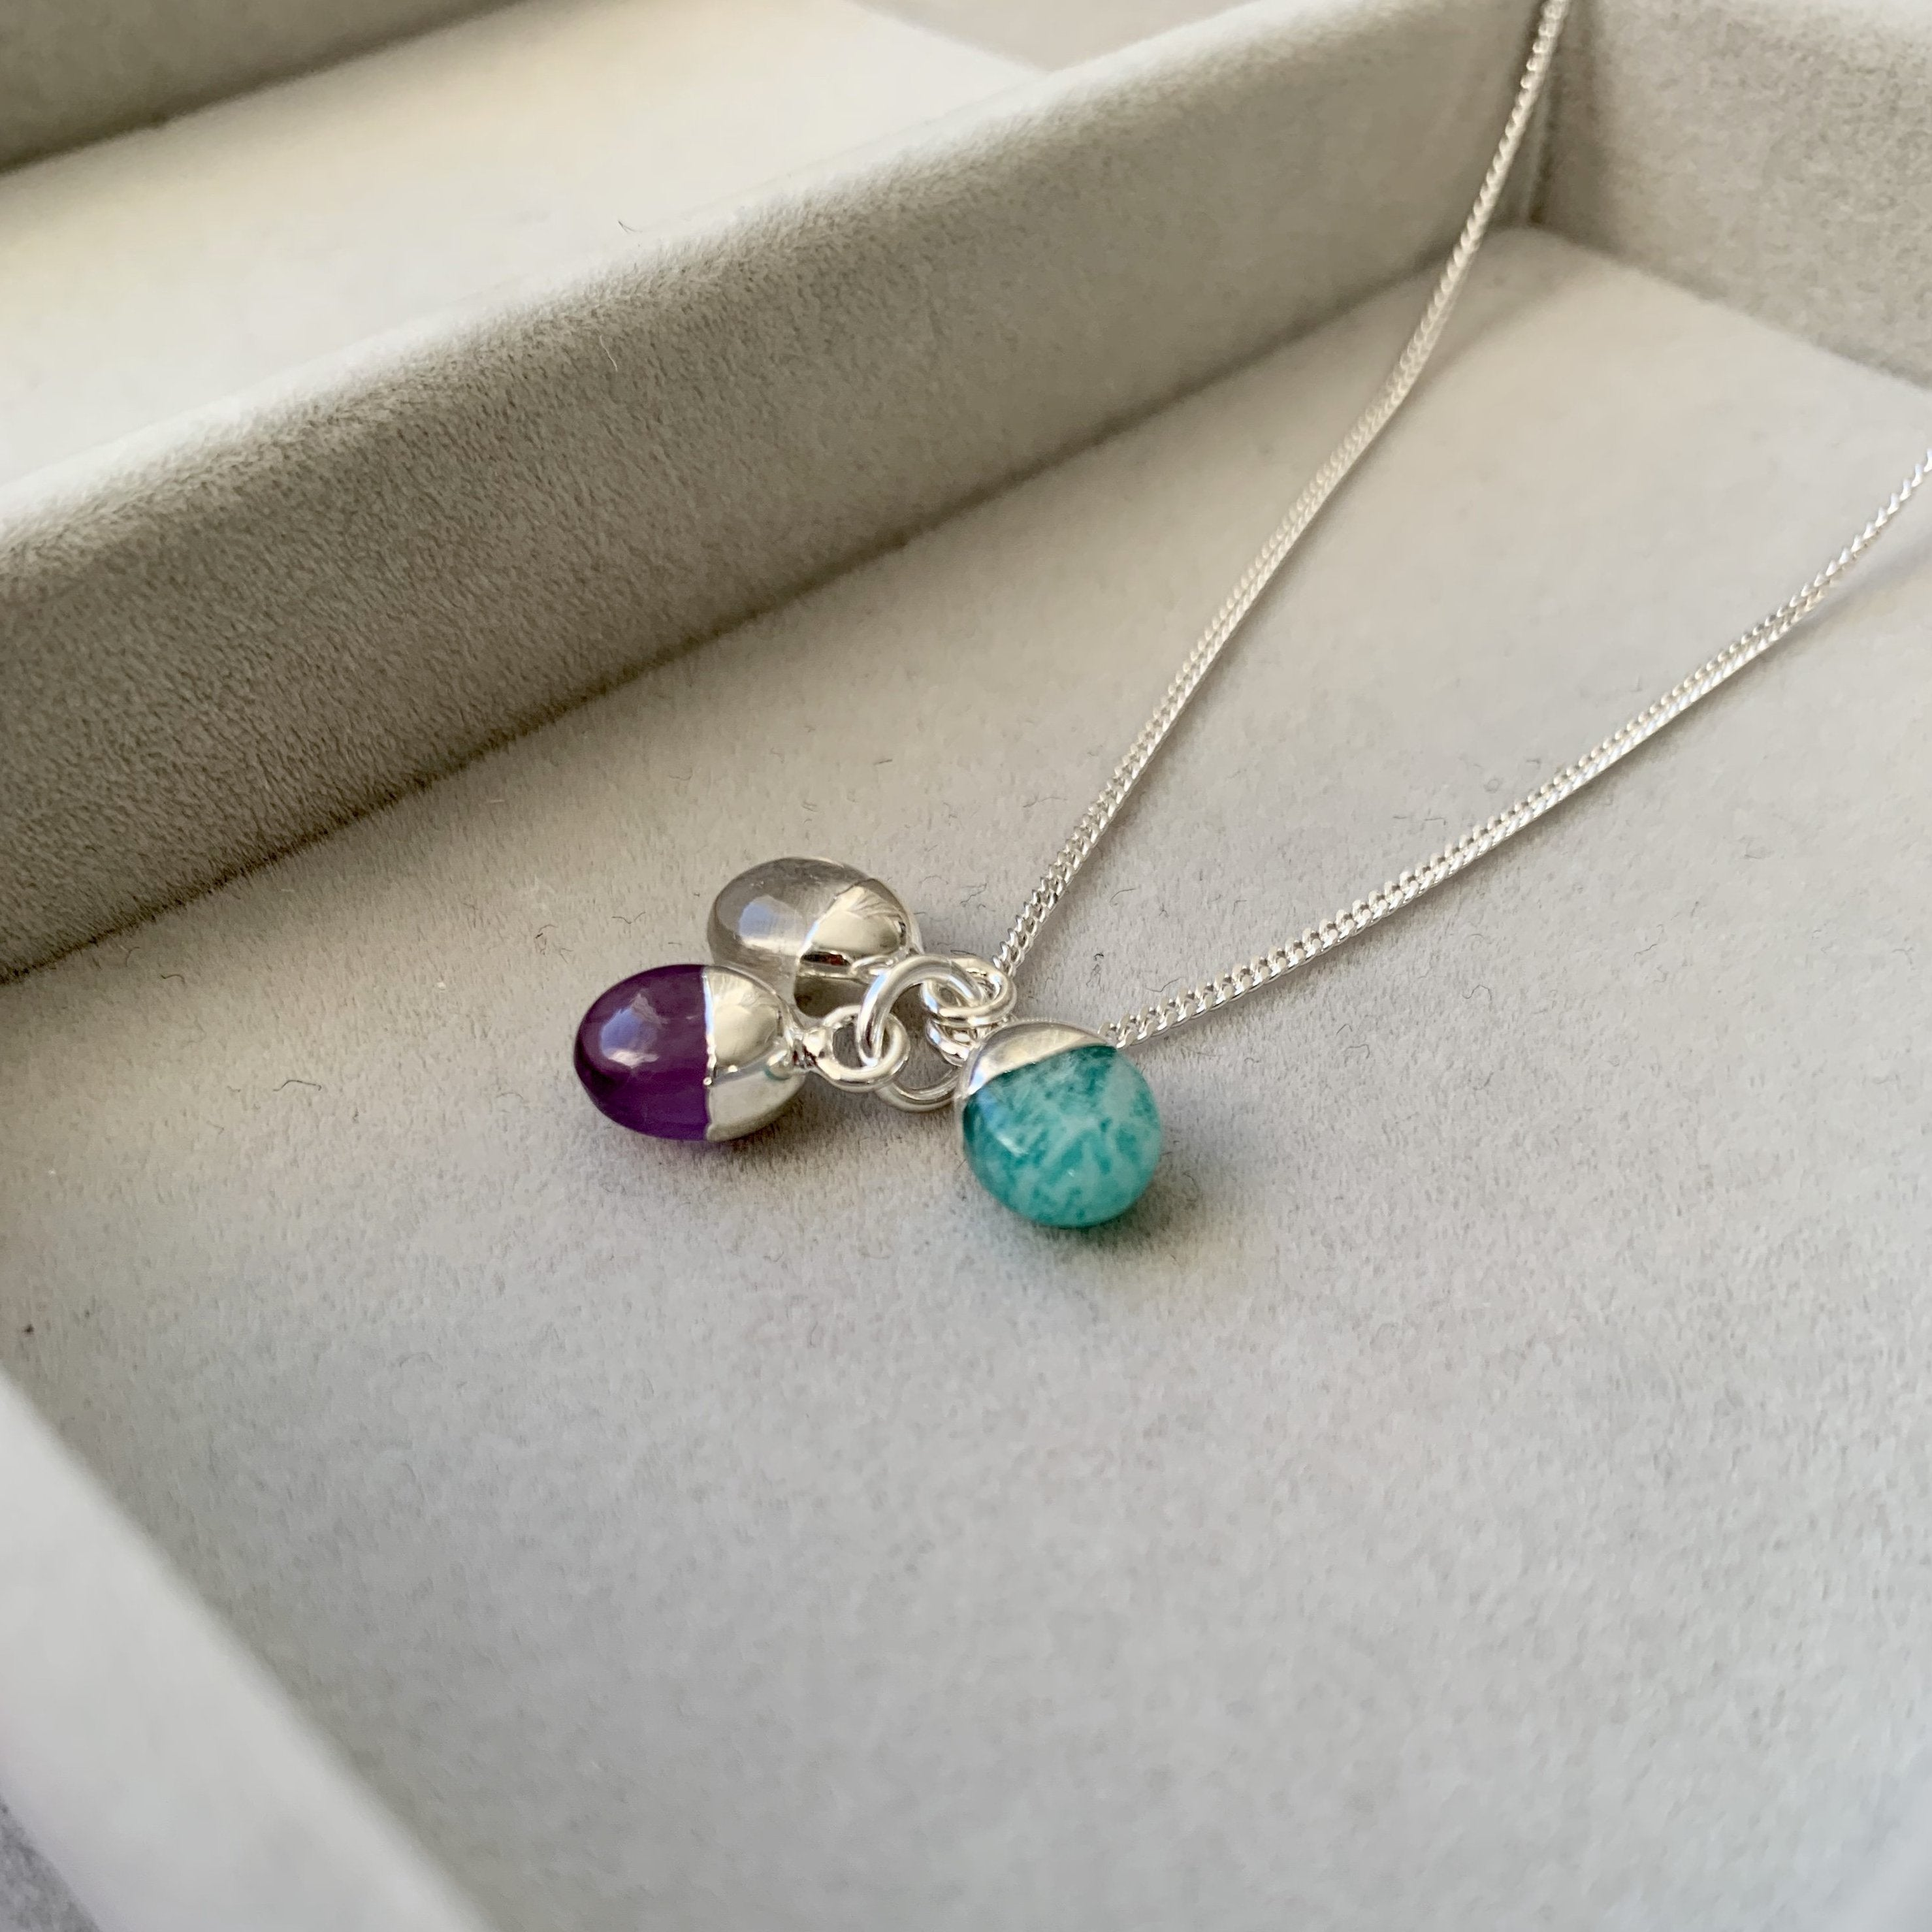 Tiny Tumbled Triple Necklace - Sterling Silver - Healing, Calming and Confidence - Decadorn